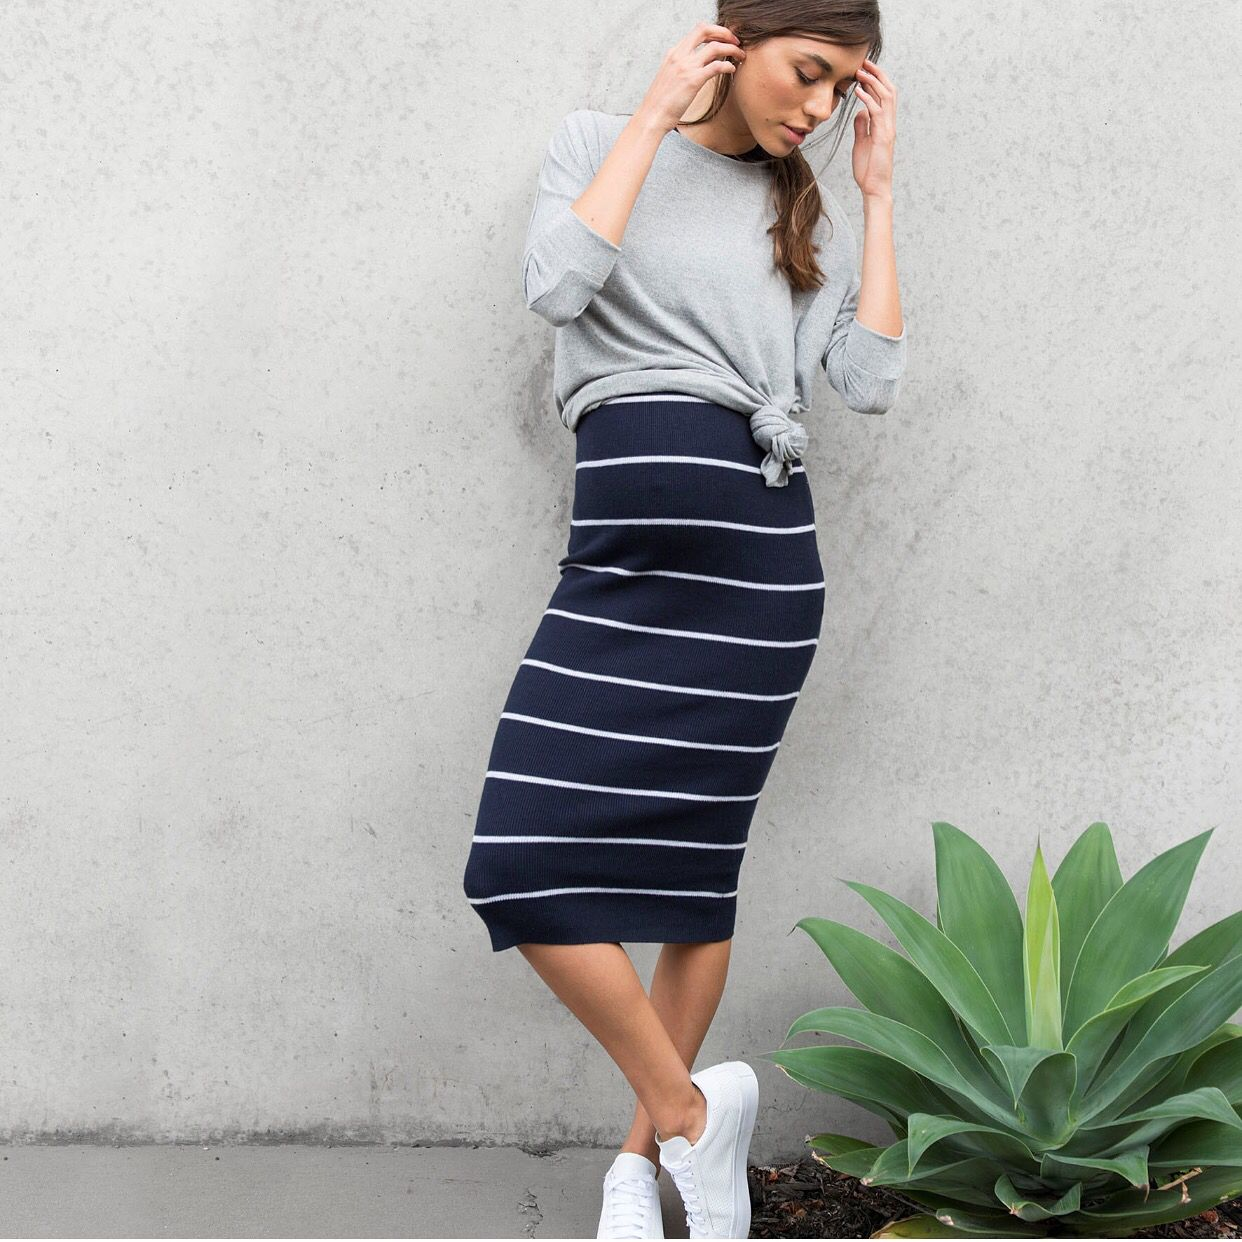 Effortlessly cool maternity layers